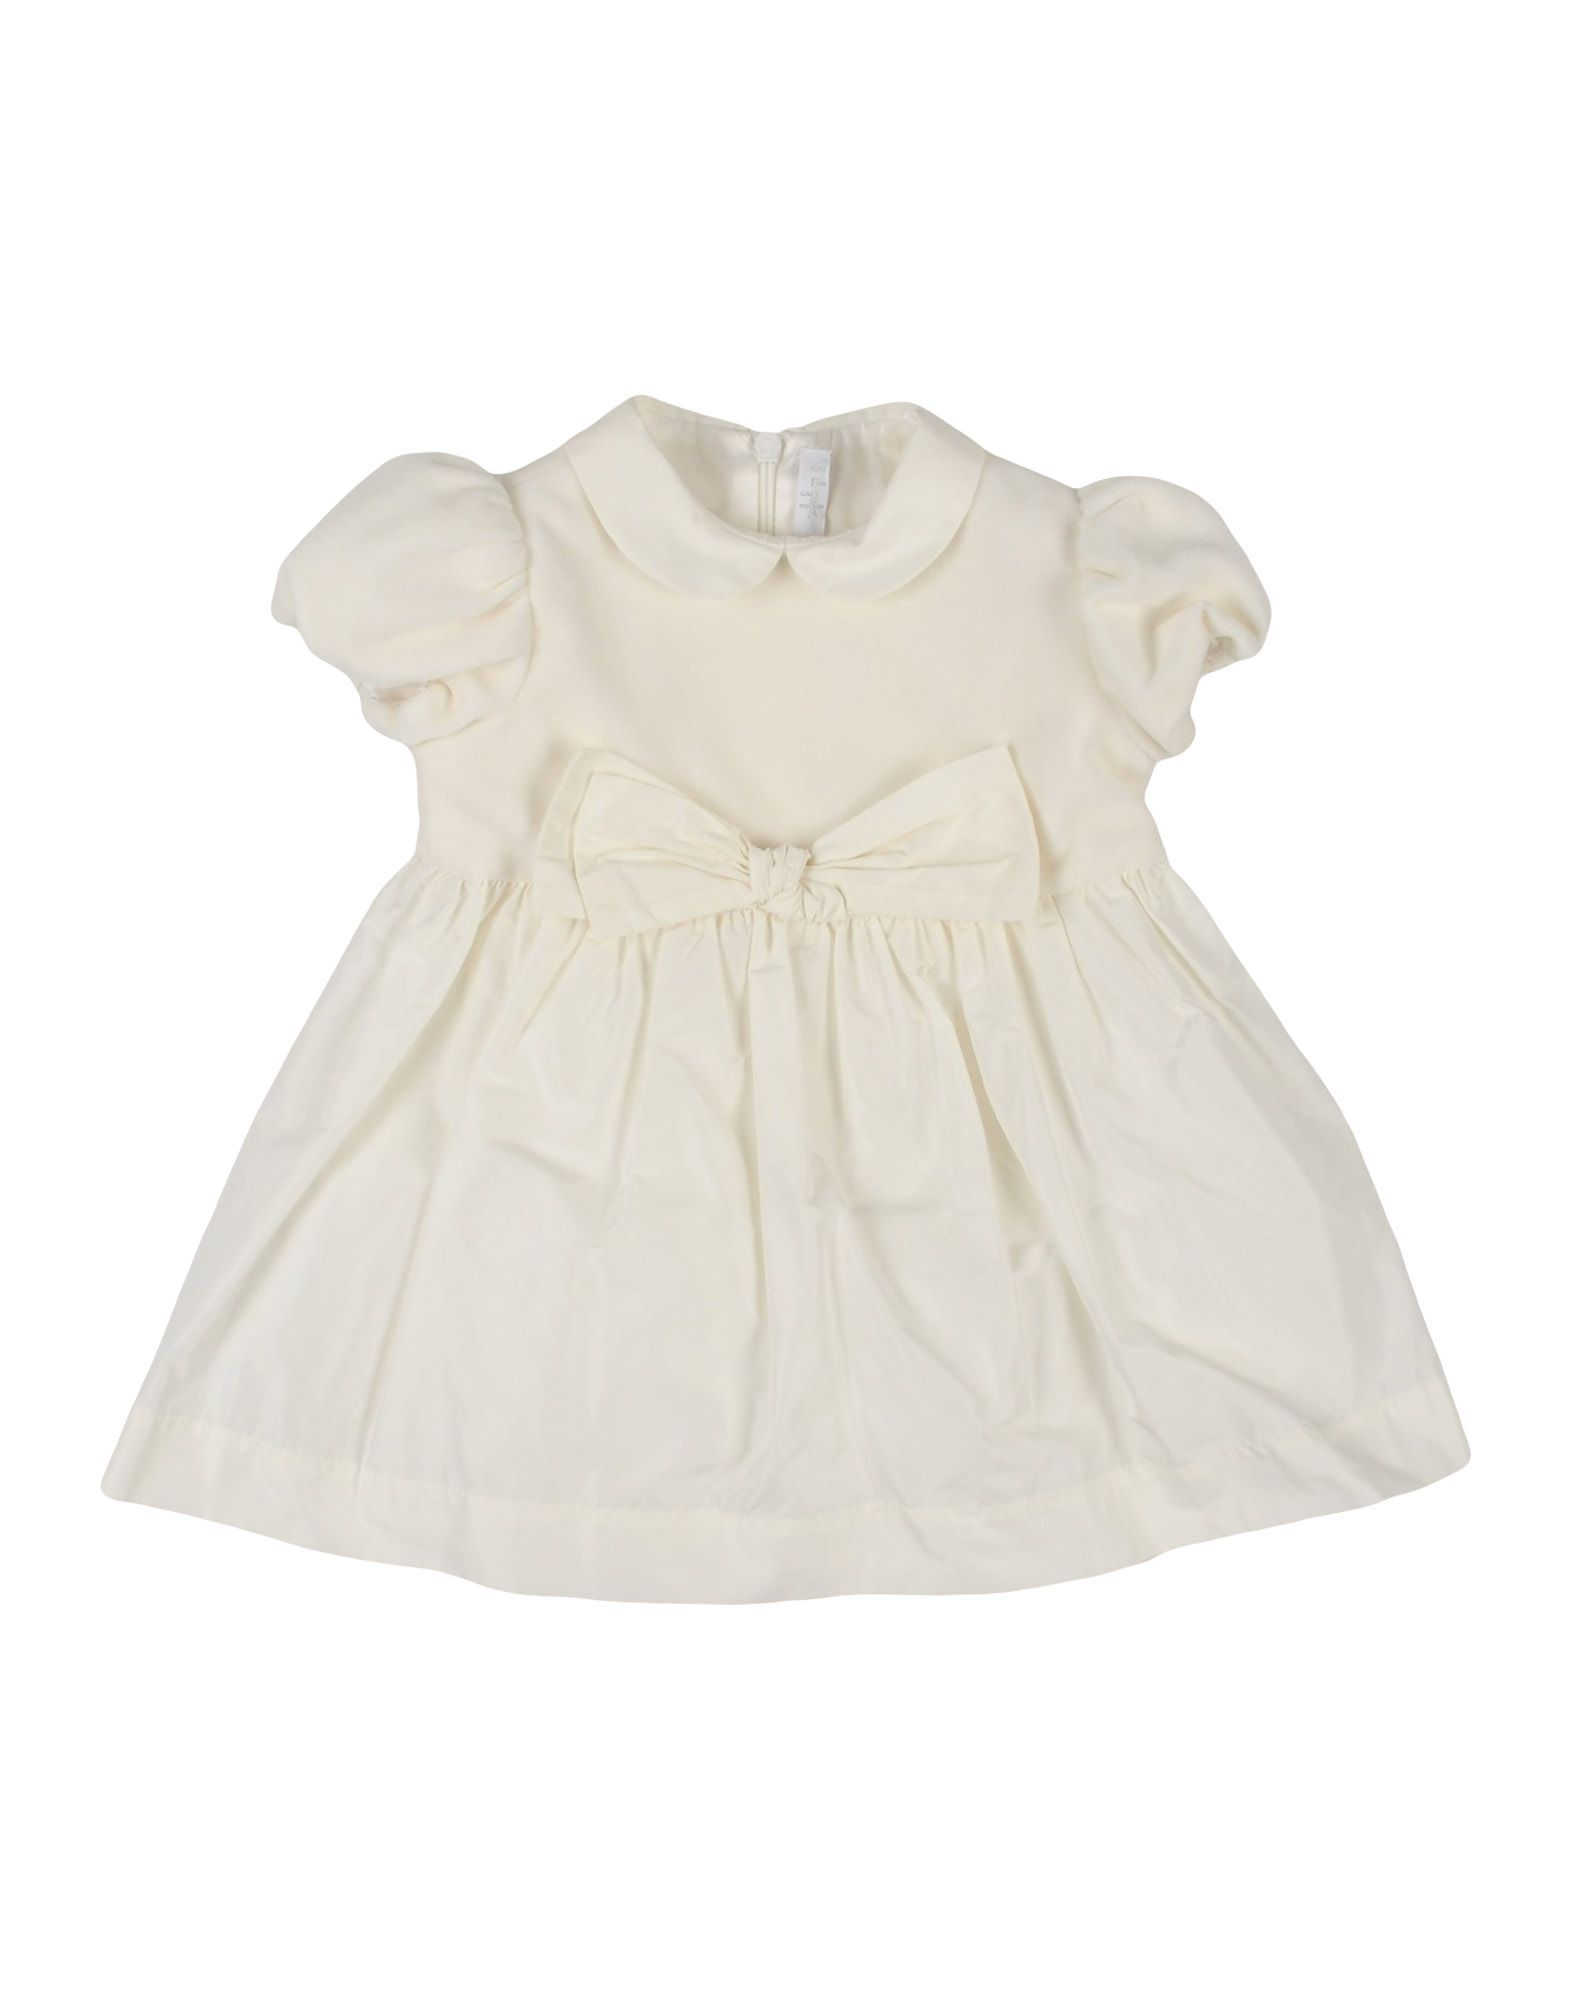 IL GUFO Dress in Ivory